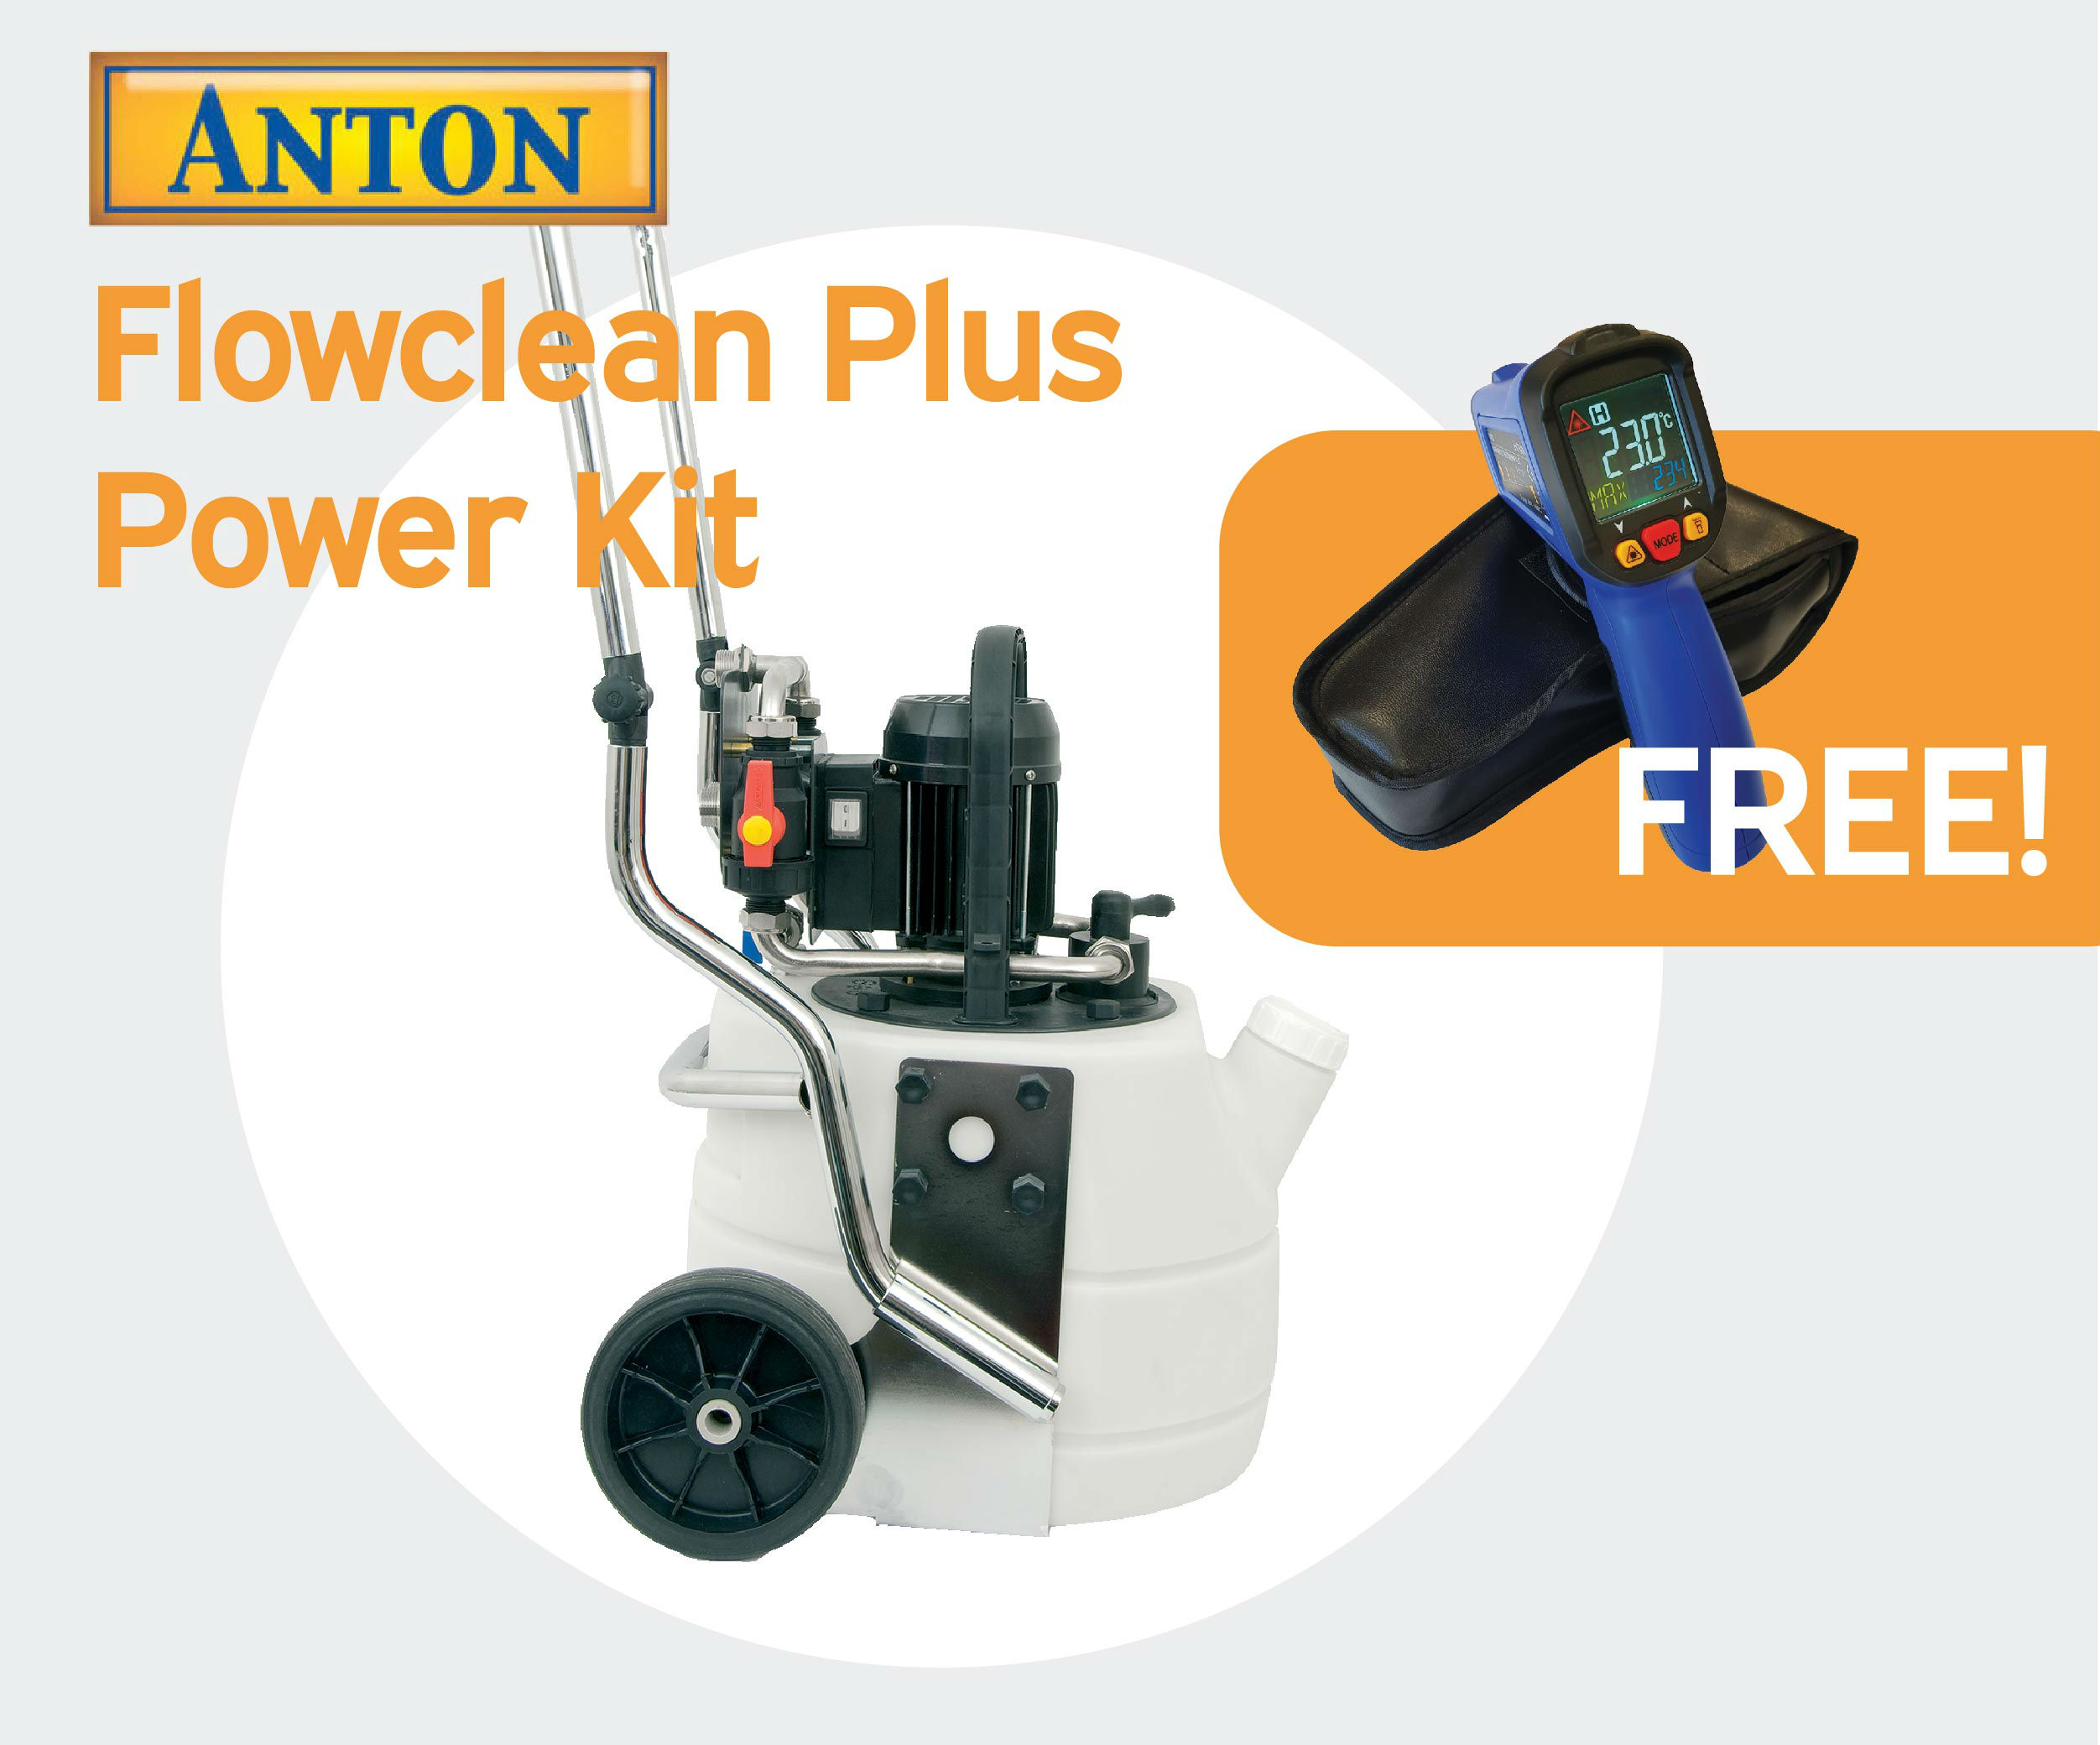 Anton Flowclean Plus with Free AIRG thermometer